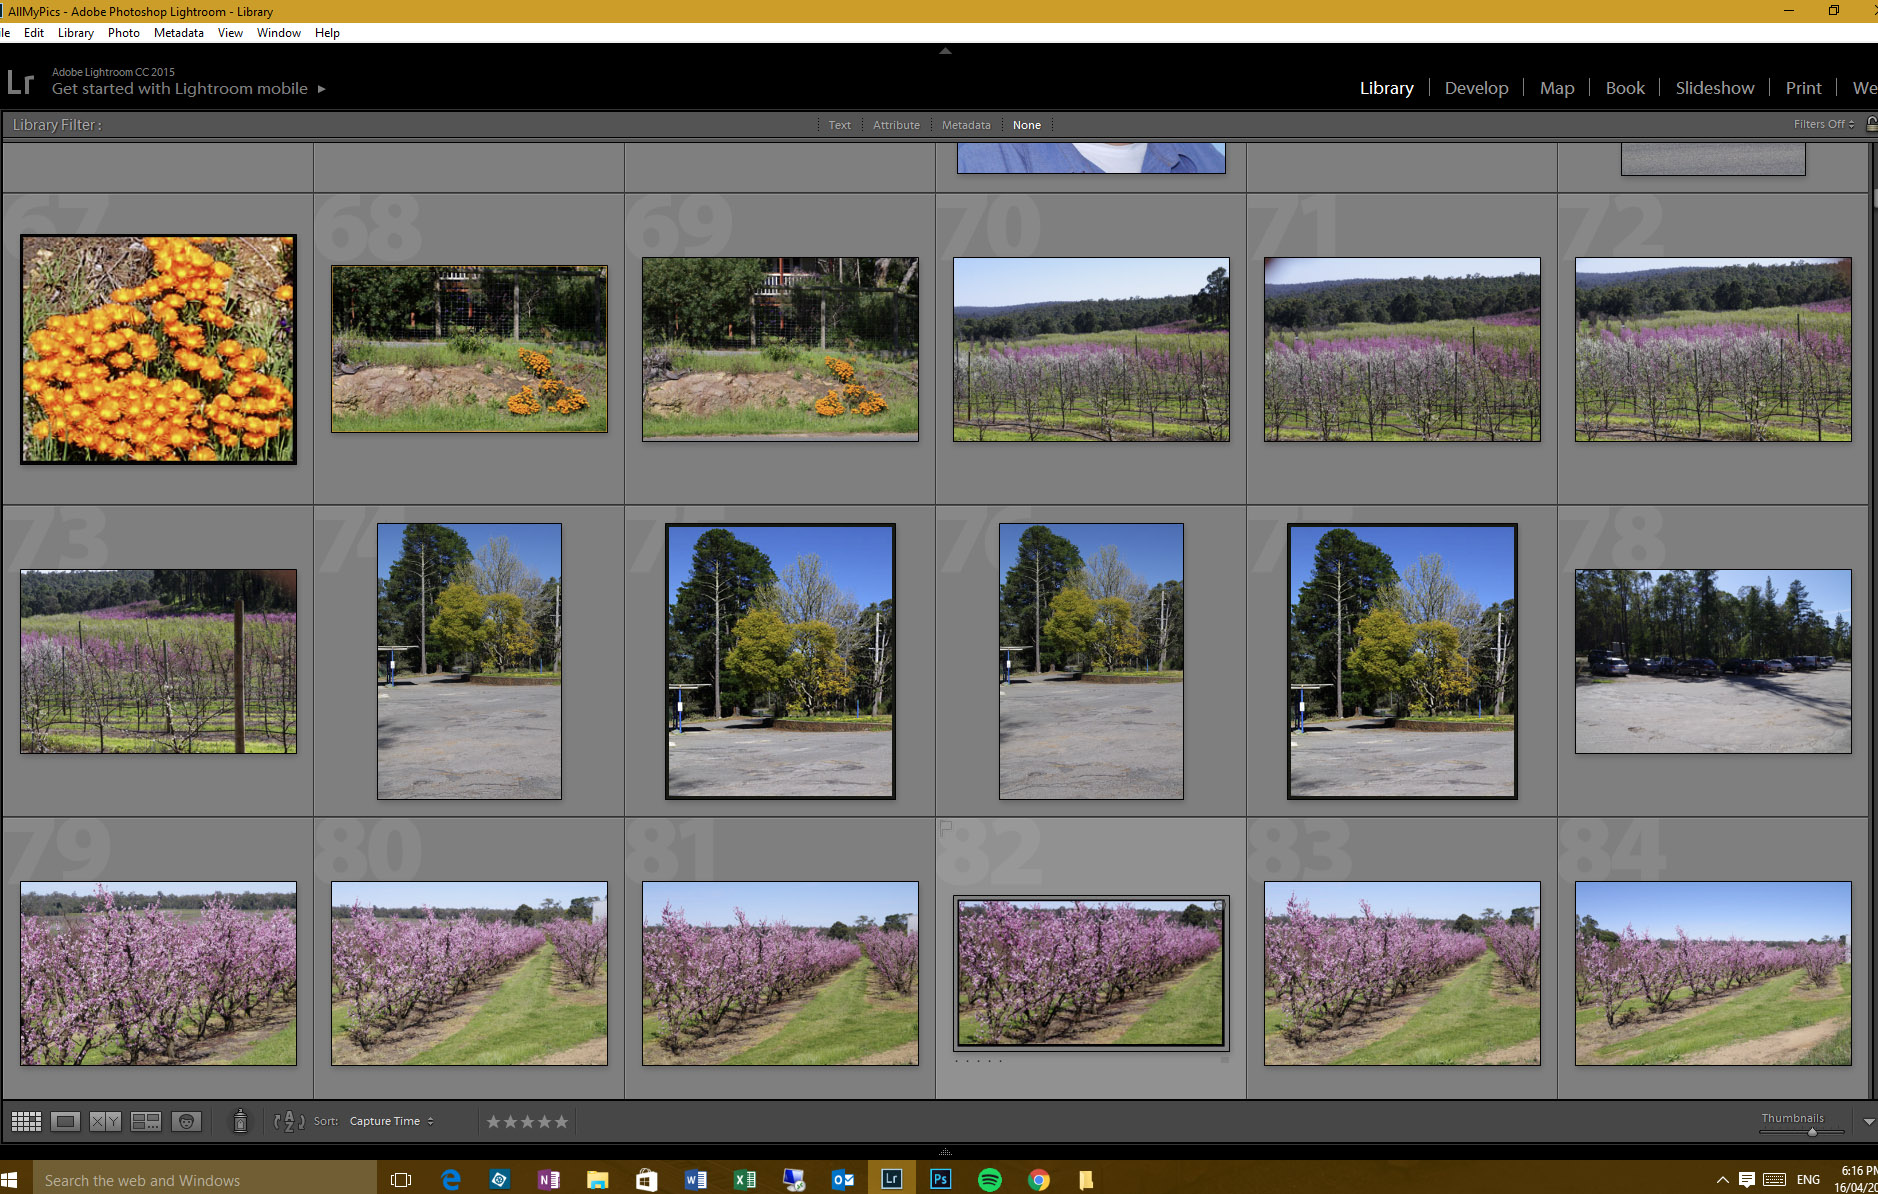 Lightroom standard thumbnail view preview page (showing 6 previews wide).